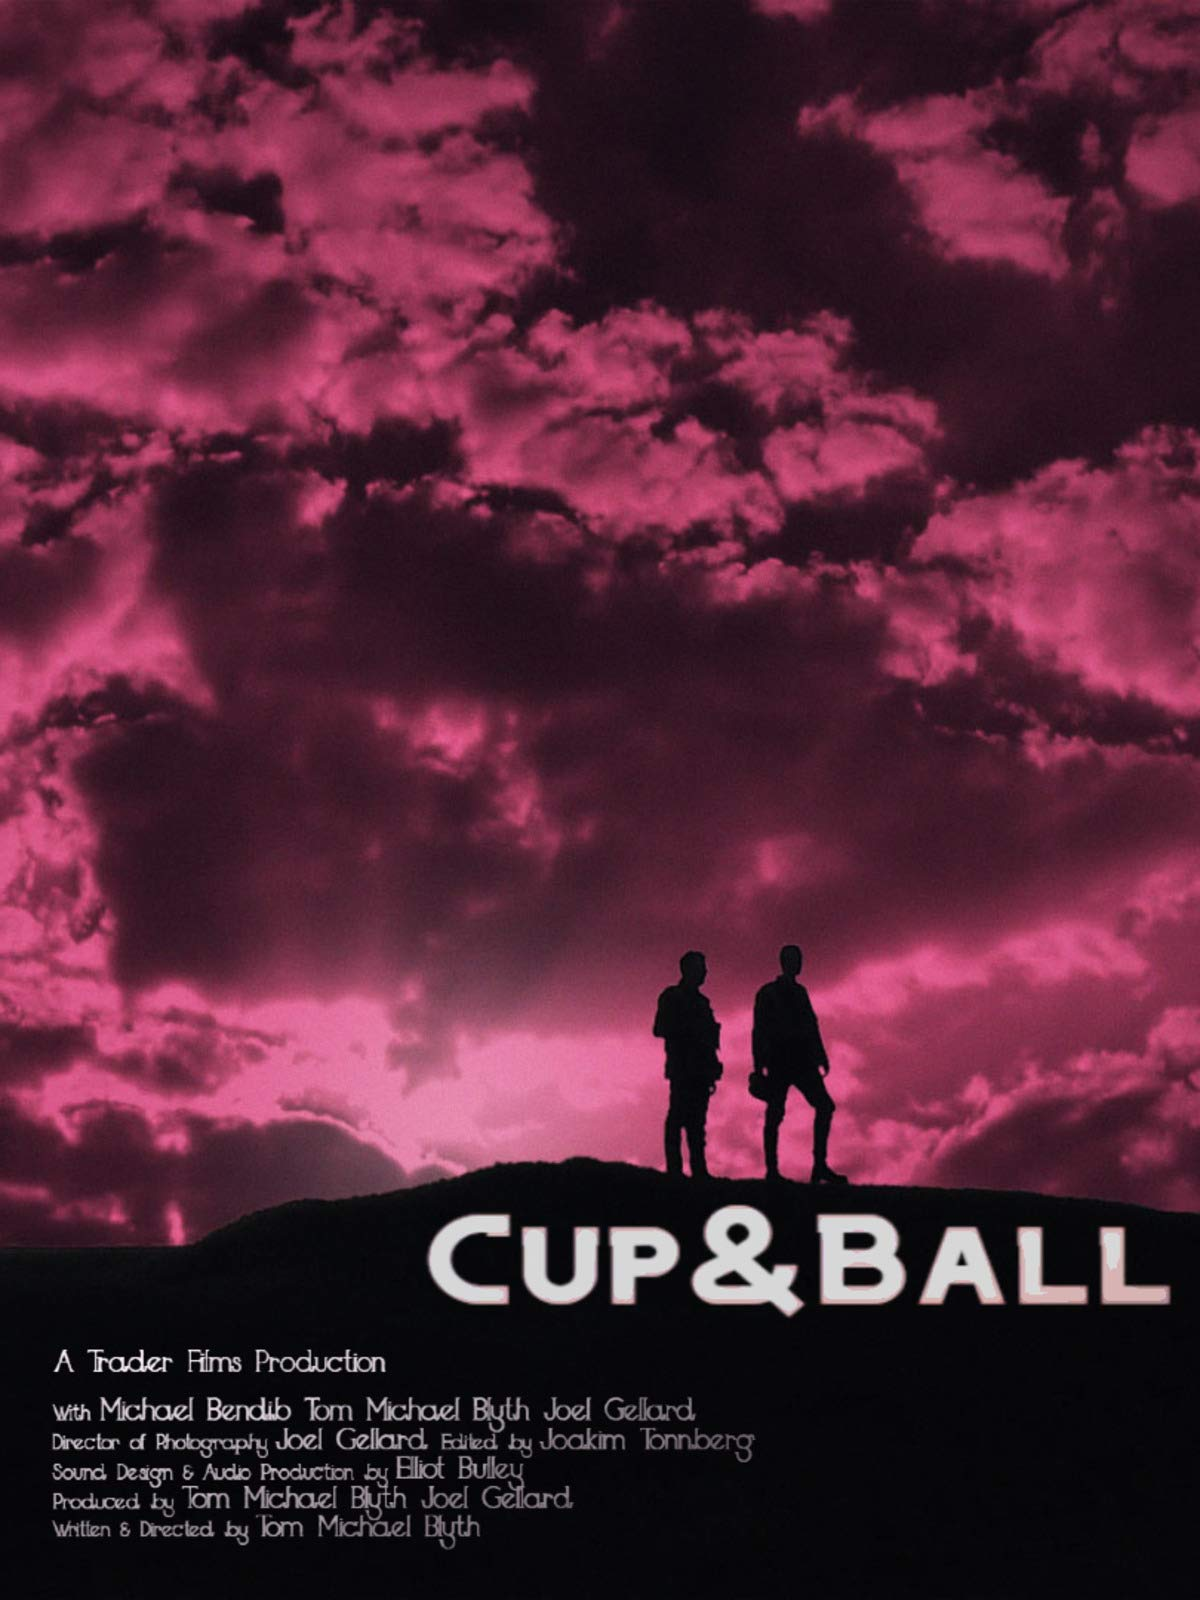 Cup & Ball